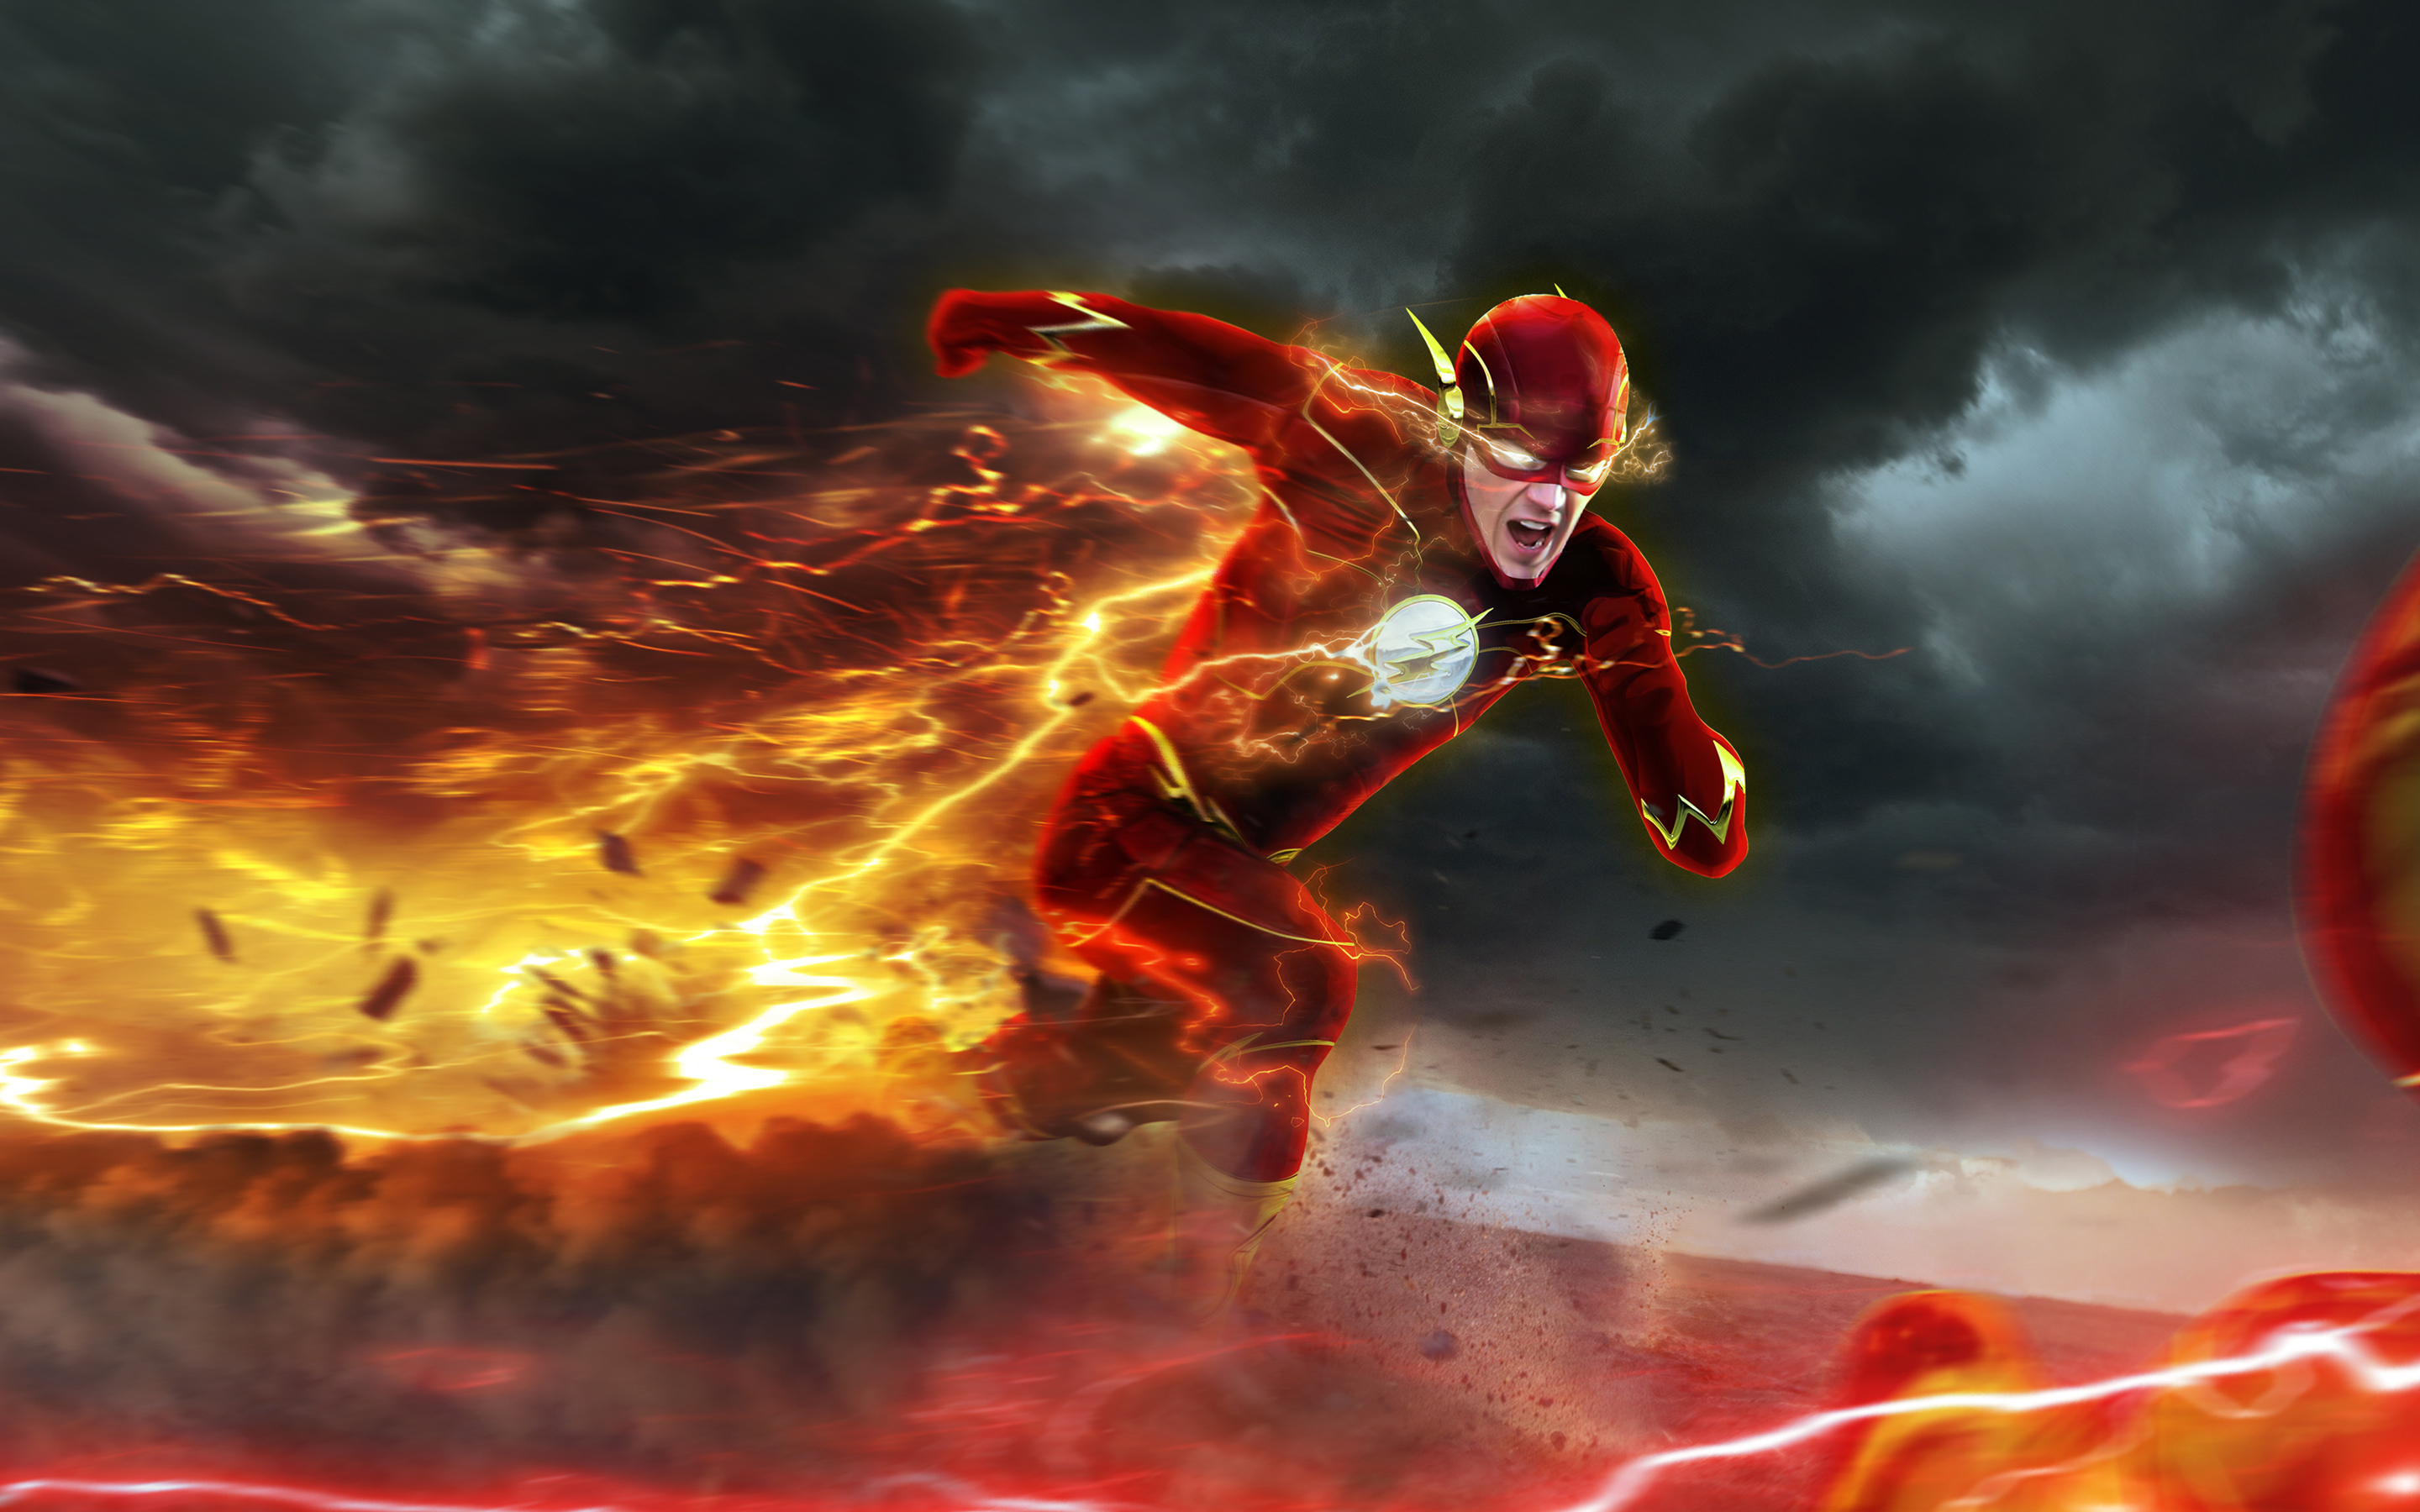 The Flash Wallpaper Hd Wallpapersafari